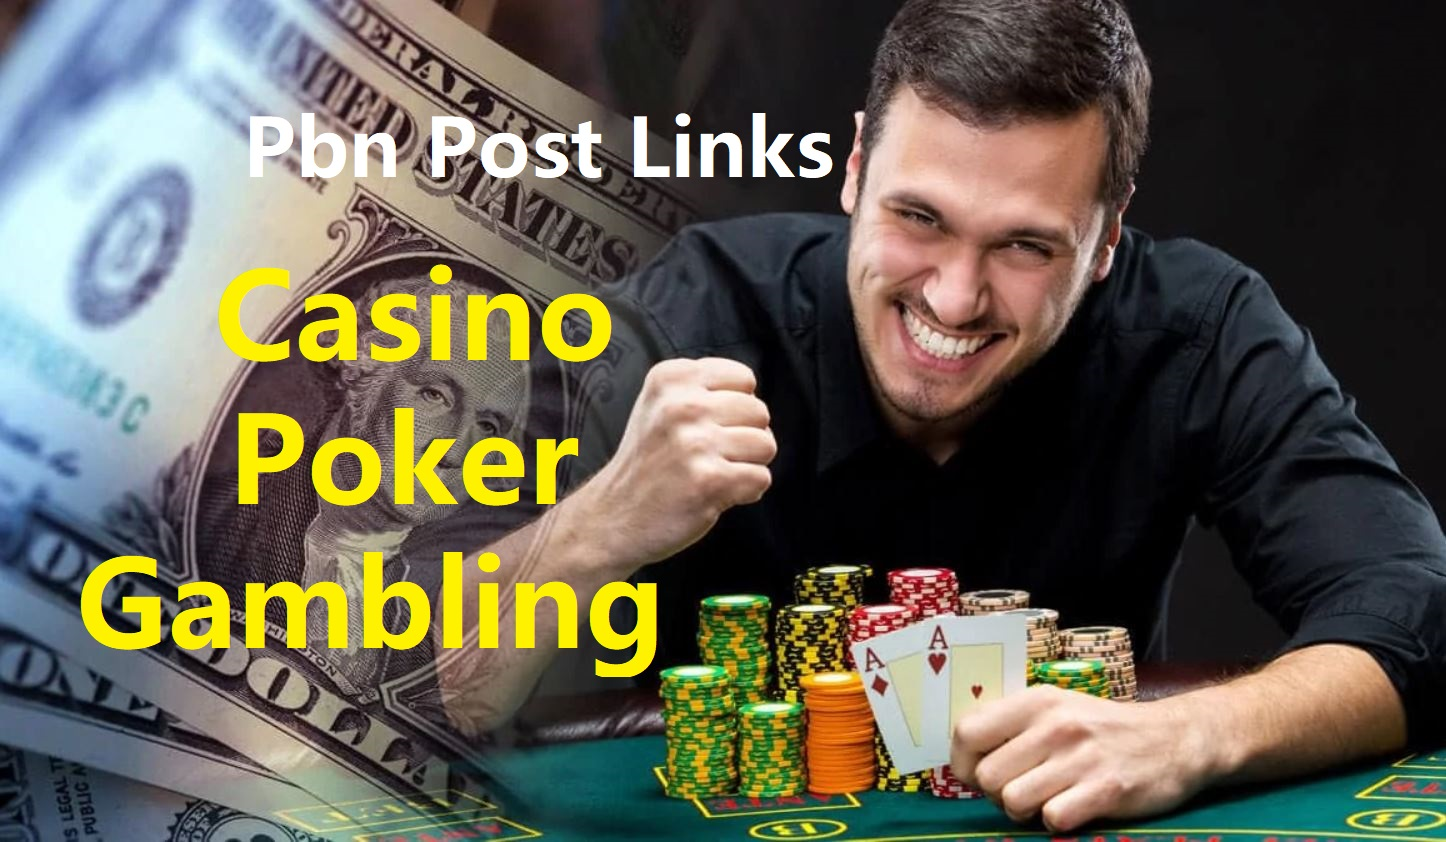 Get 400 high QUALITY DA 55+ CASINO, GAMBLING, POKER pbn backlinks